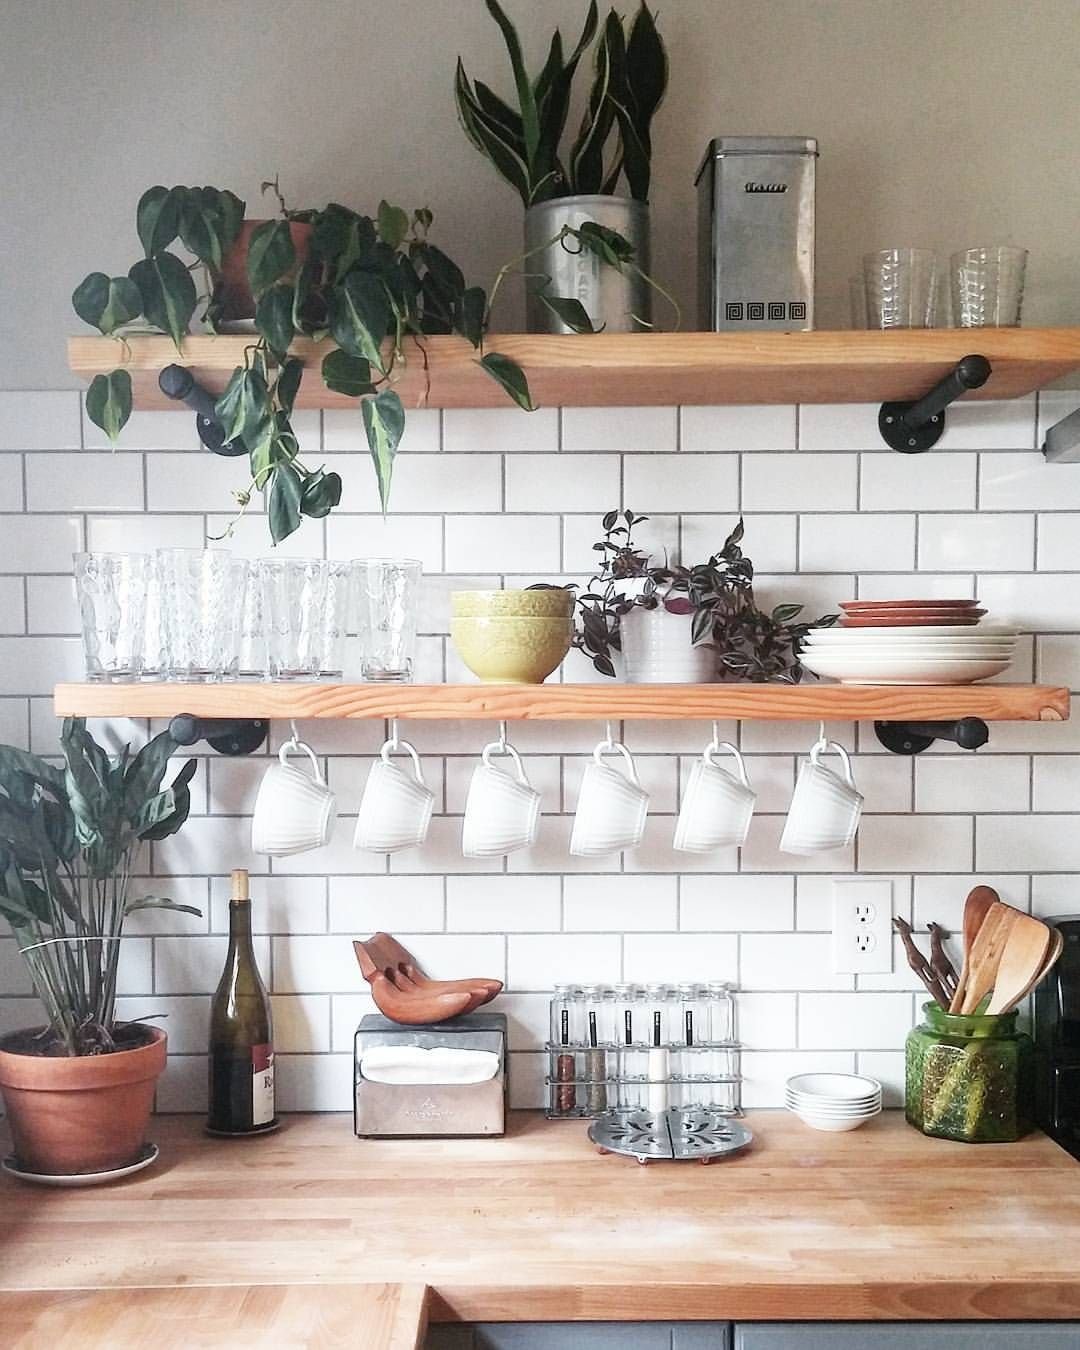 pin katie varela ideas for lemon grove kitchen home floating shelves walls coffe bar open cabinets bookshelf small bathroom table ikea white wall shelving unit inexpensive